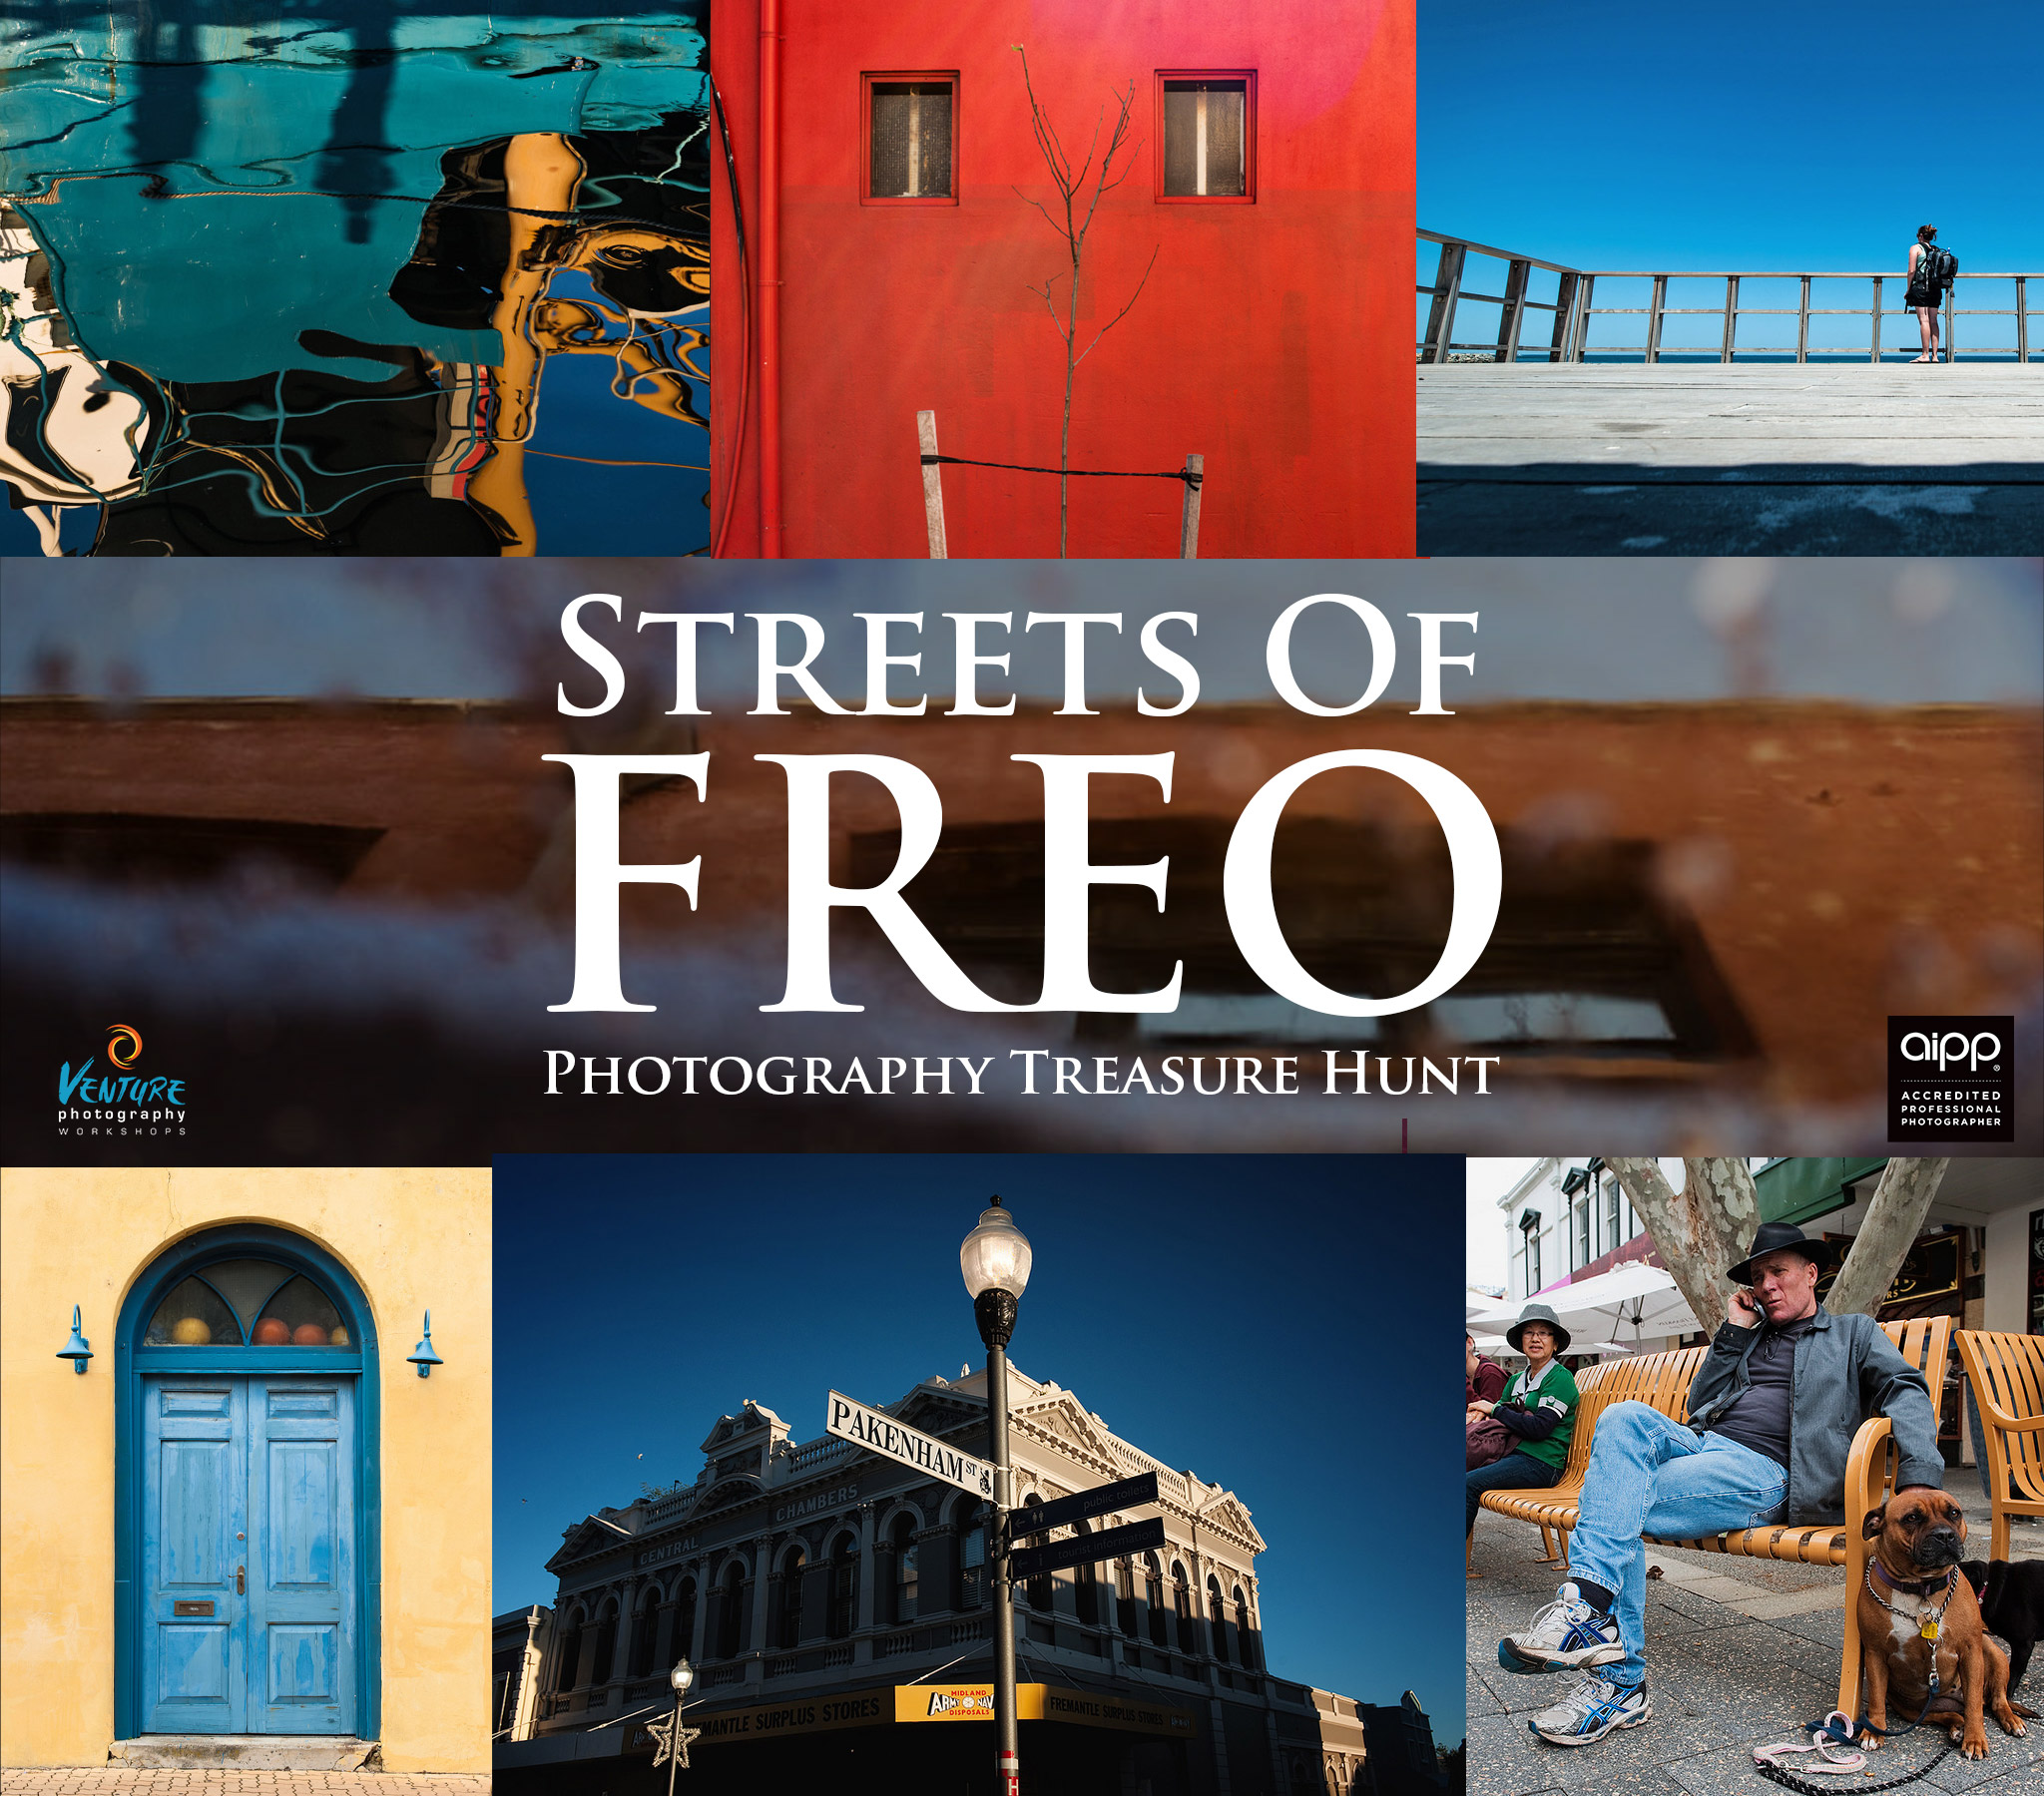 Streets of Freo